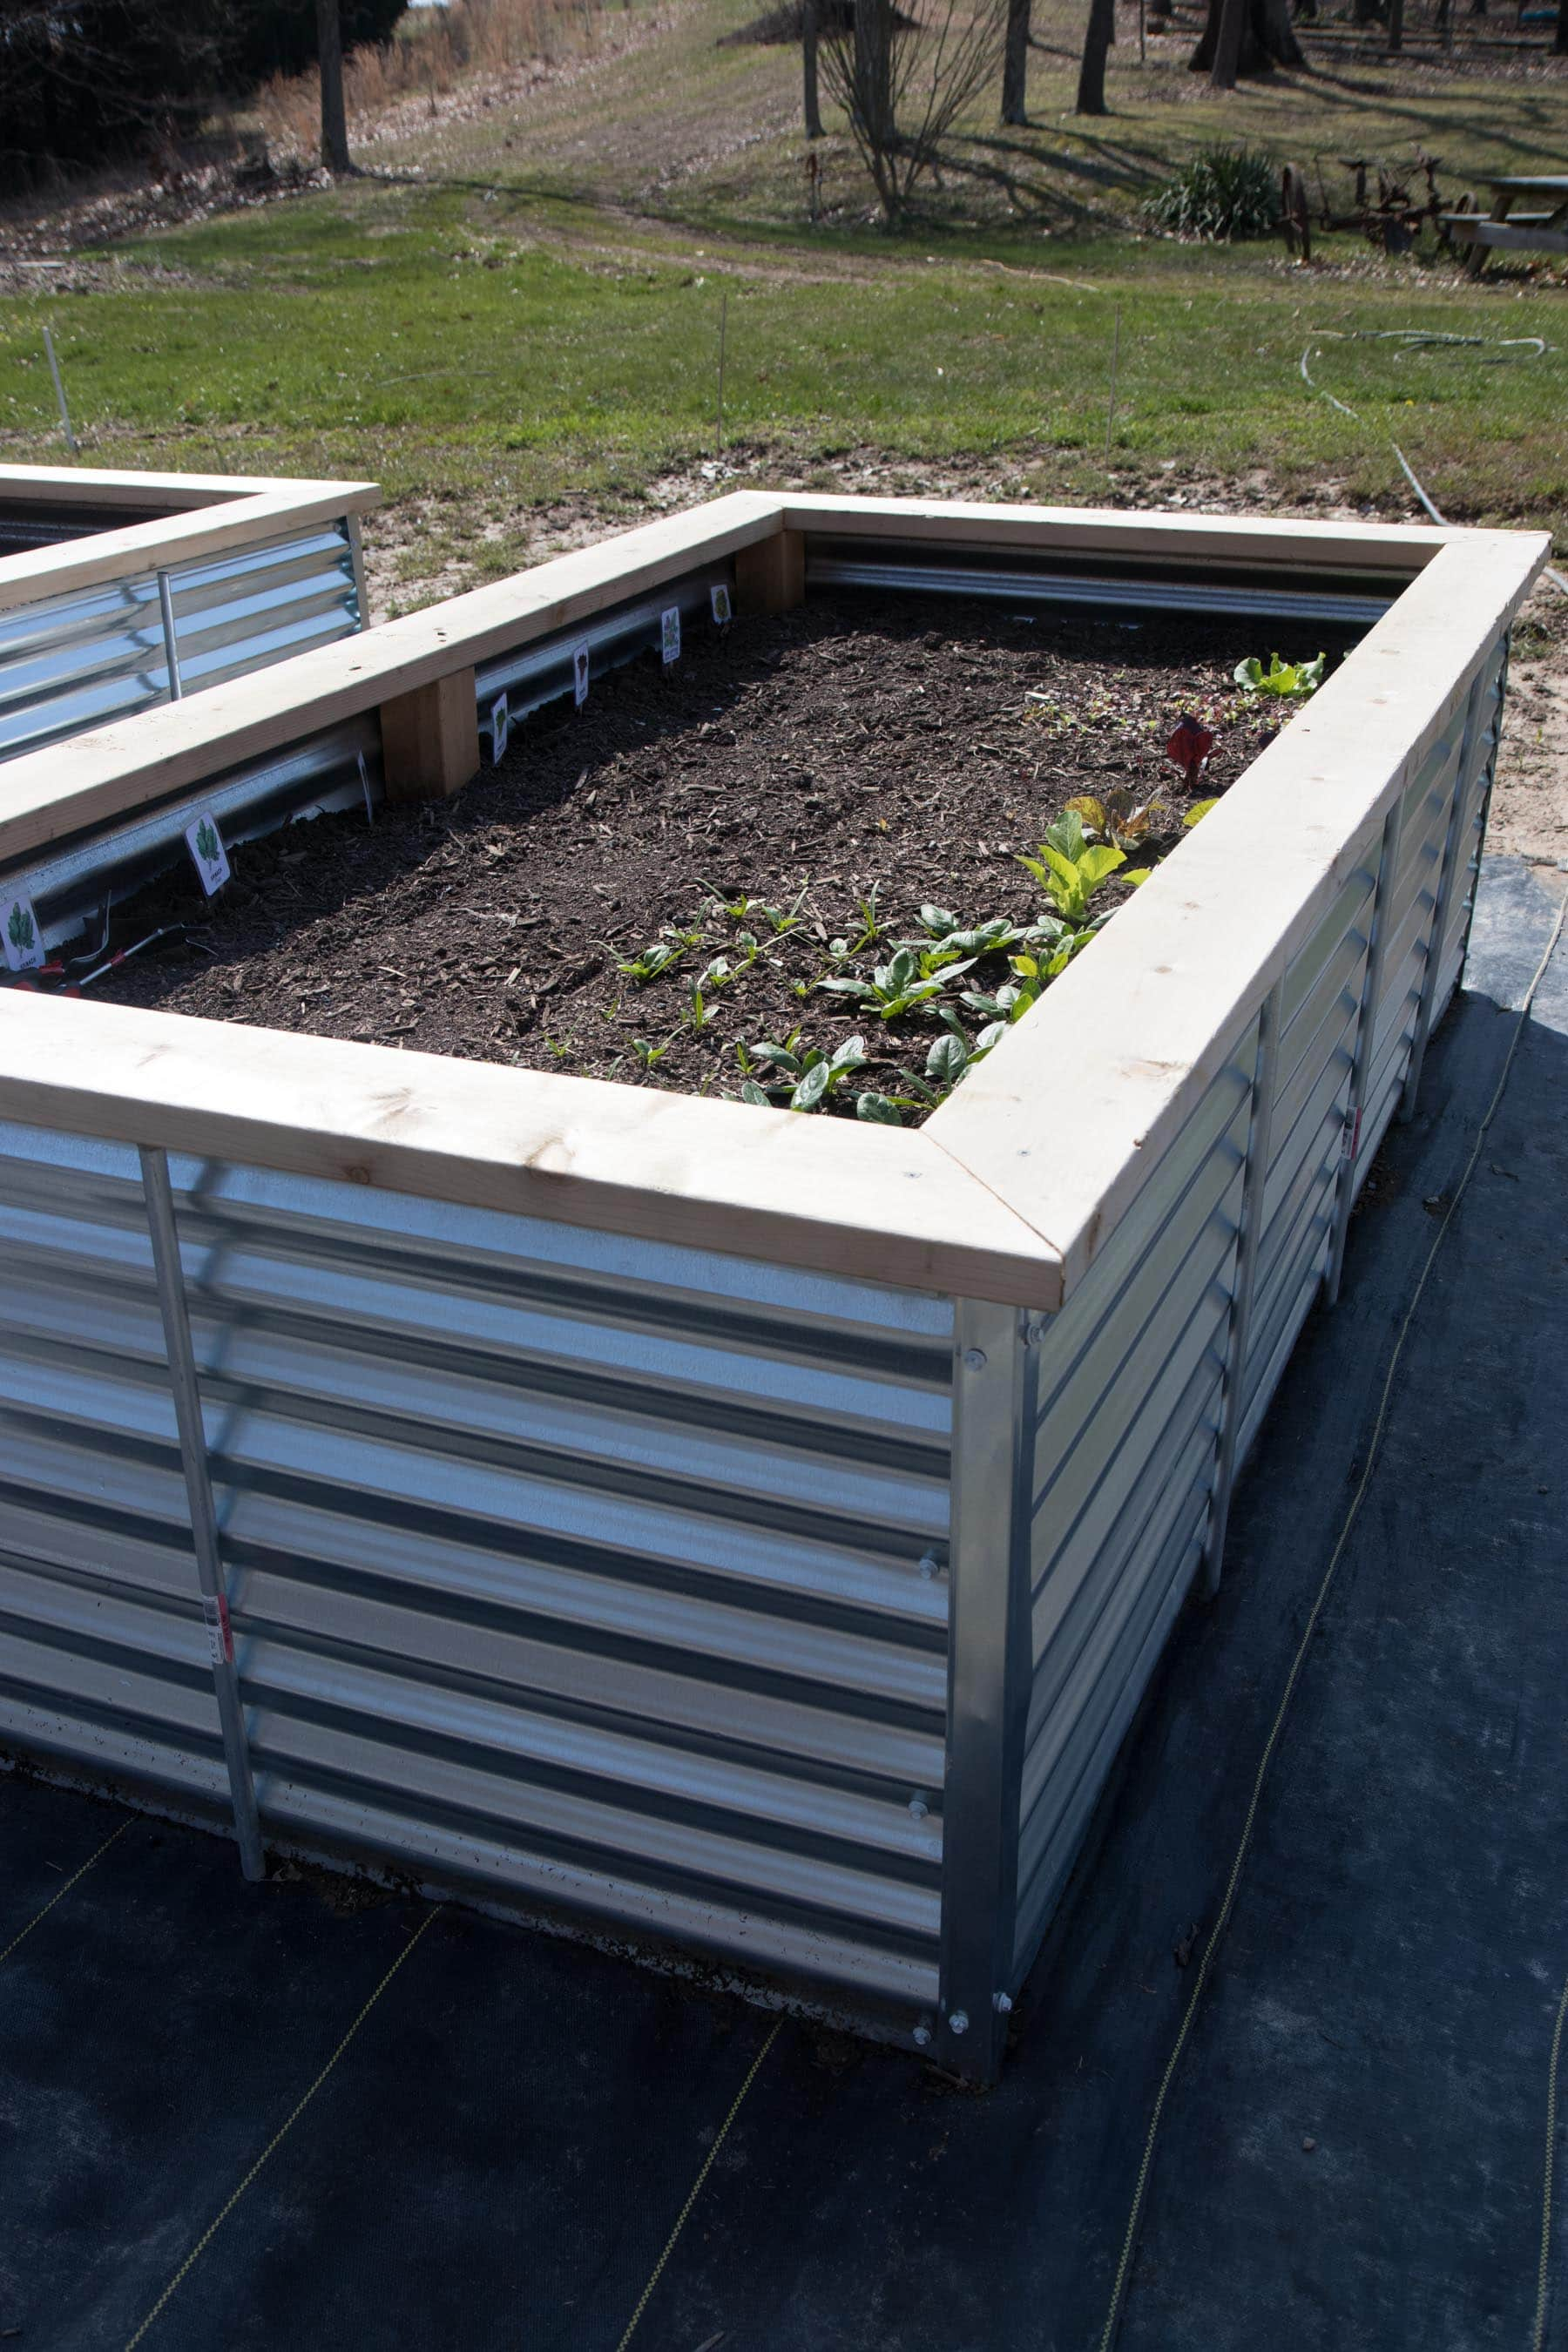 Side angle shot of a galvanized steel raised bed, planted with greens